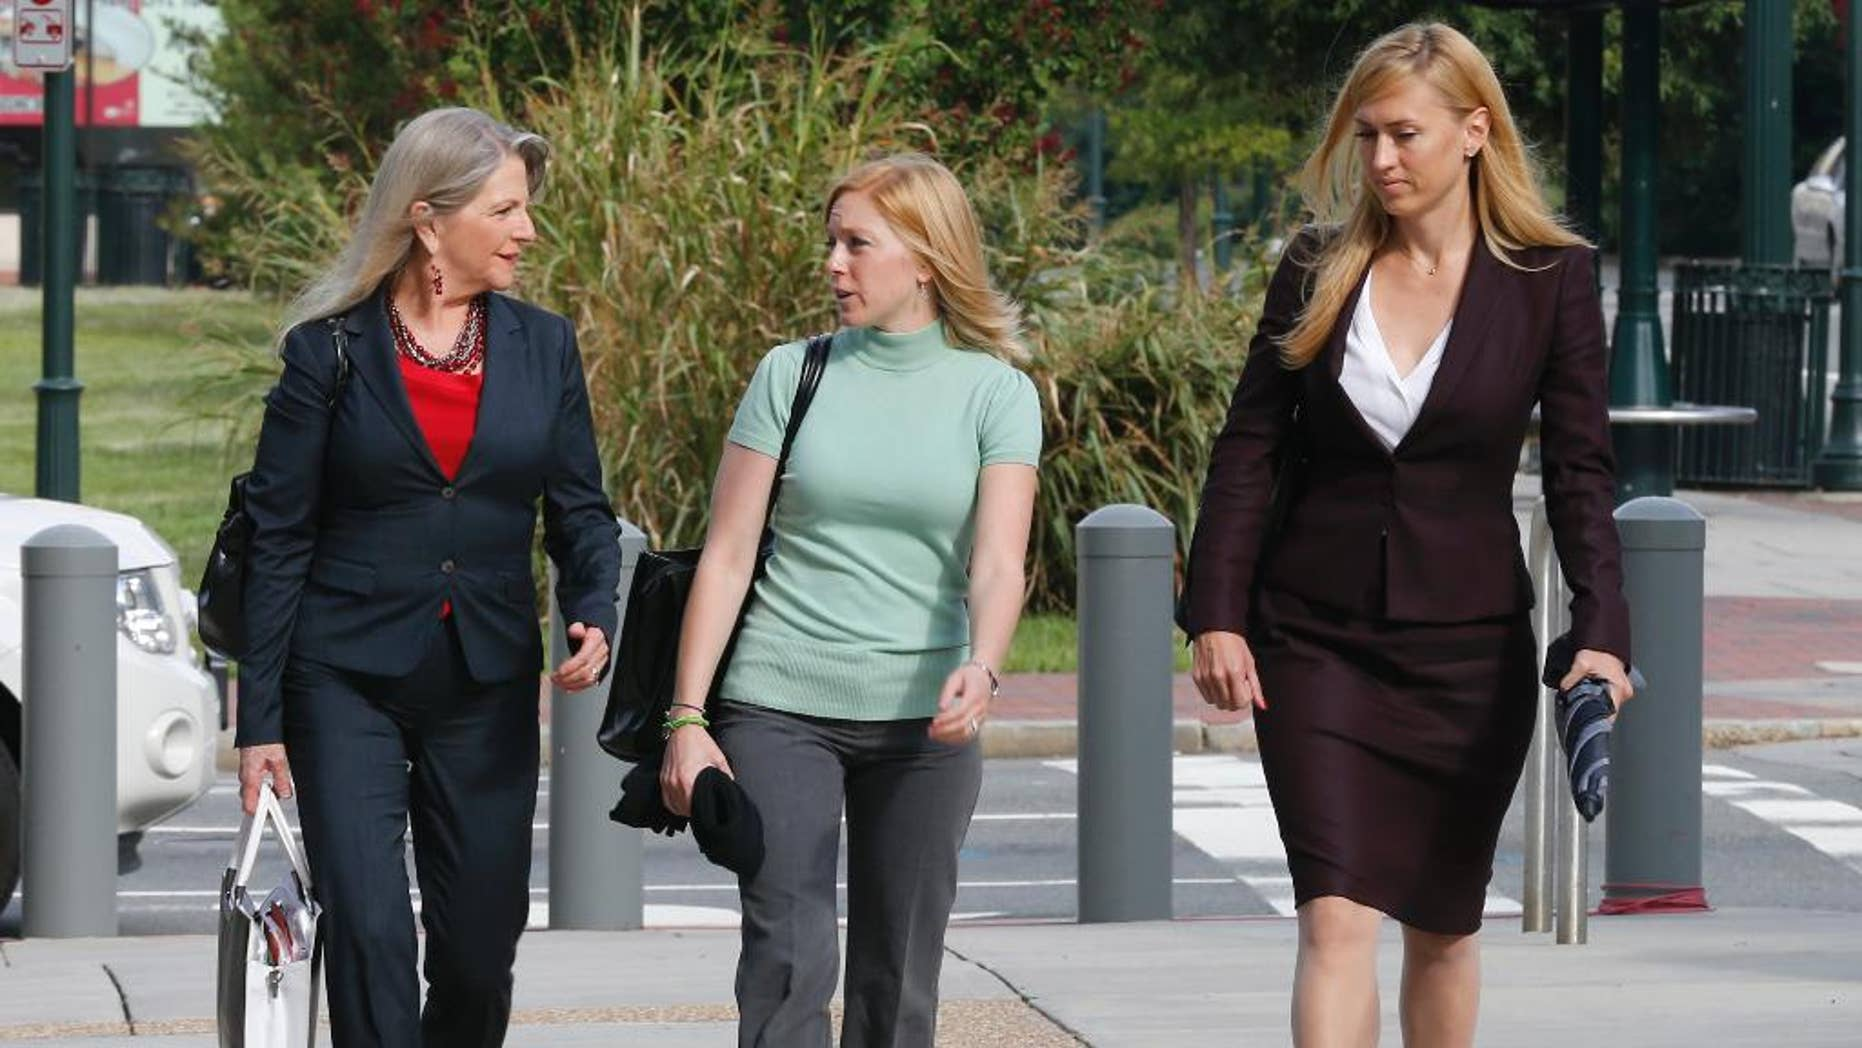 Former Virginia first lady, Maureen McDonnell, left, talks with her Daughter Cailin Young, center, and her attorney Heather Martin, as they arrive at federal court in Richmond, Va., Tuesday, Aug. 19, 2014. The McDonnells are presenting the second day of his defense on corruption charges. (AP Photo/Steve Helber)